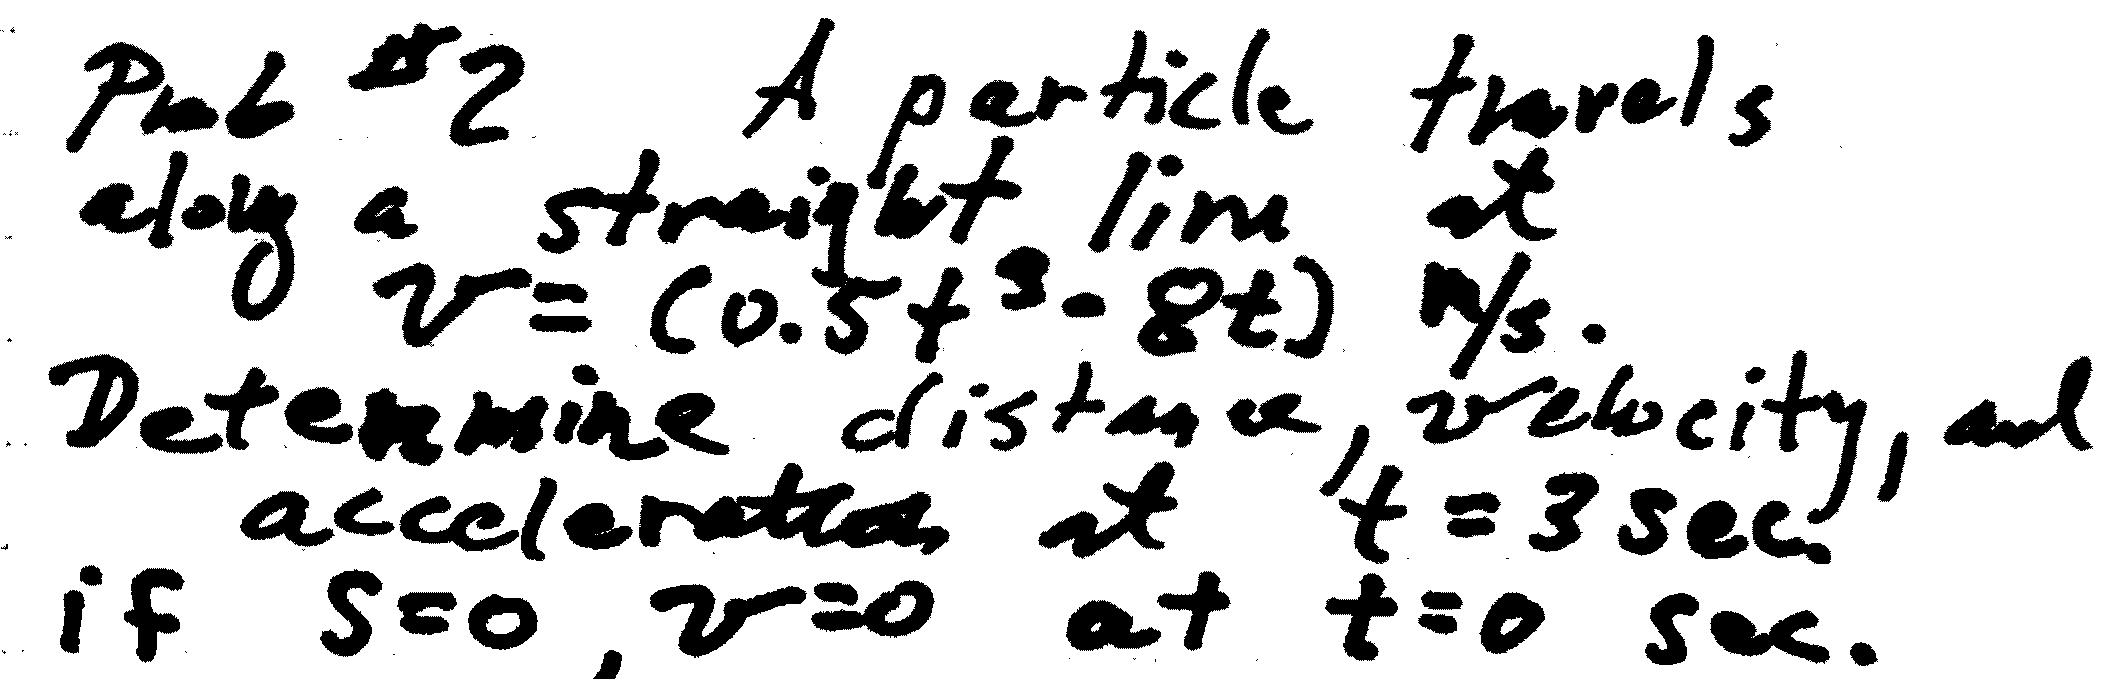 A particle travels along a straight line at v = (0